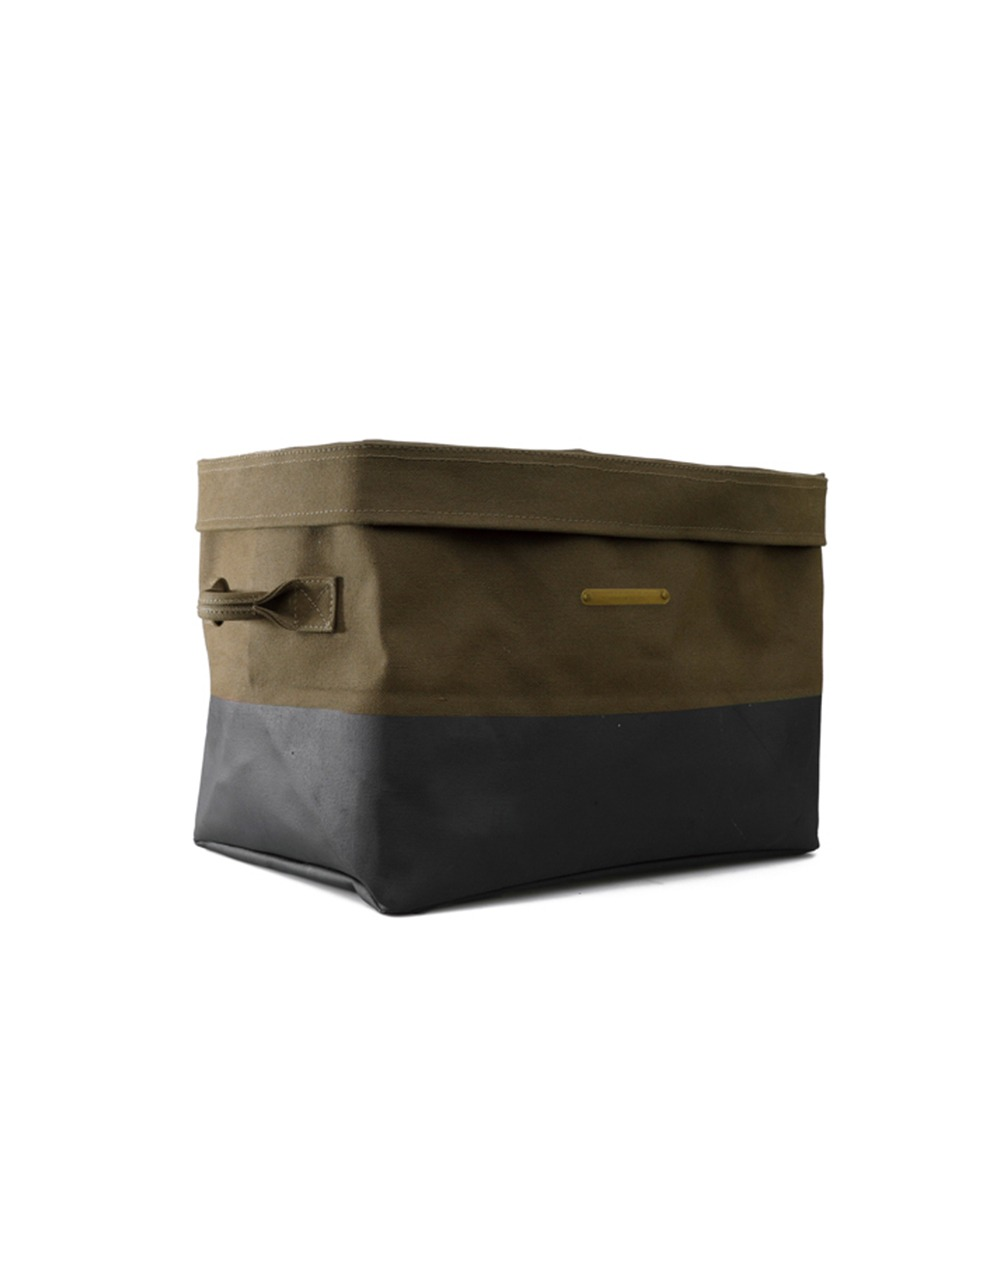 HIGHTIDE CANVAS STORAGE SQUARE  KHAKI